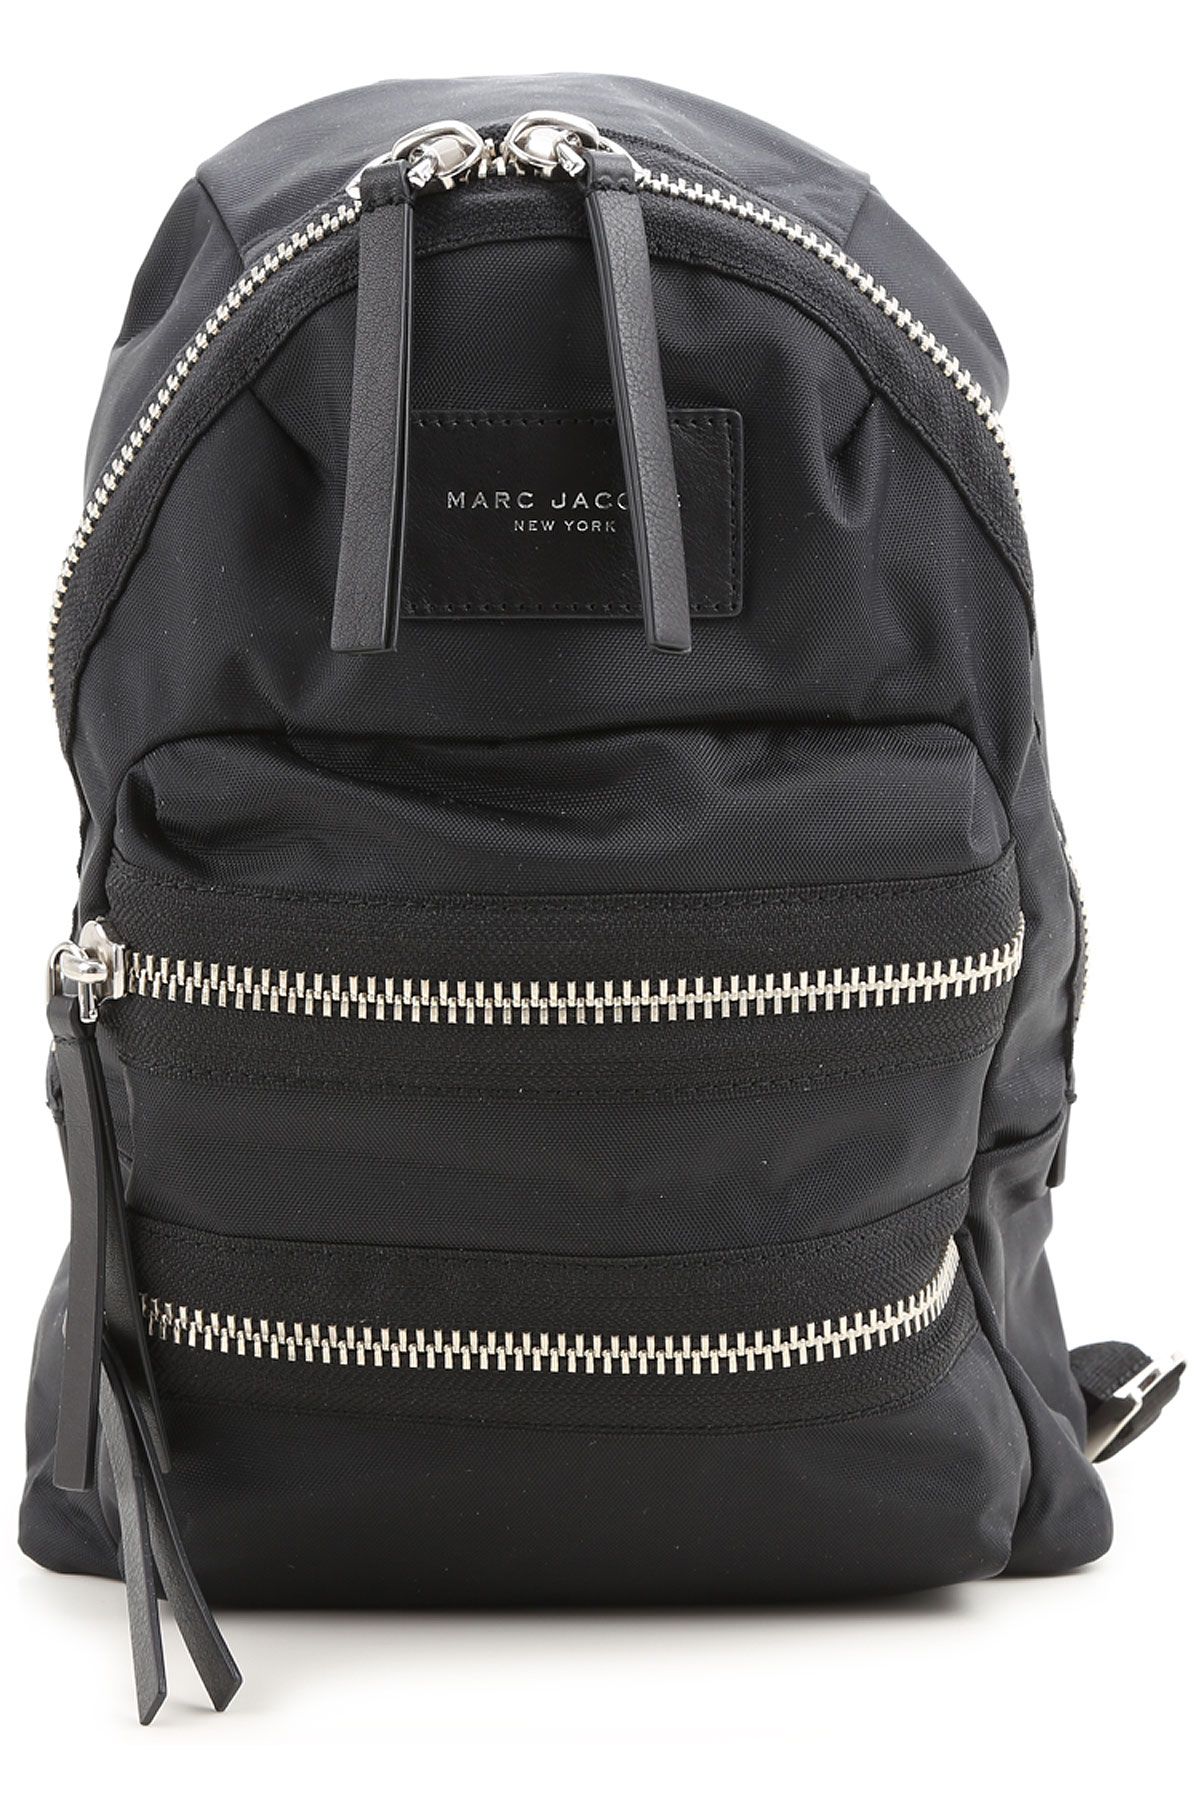 Marc Jacobs Backpack for Women On Sale, Black, Nylon, 2017, one size one size USA-365002